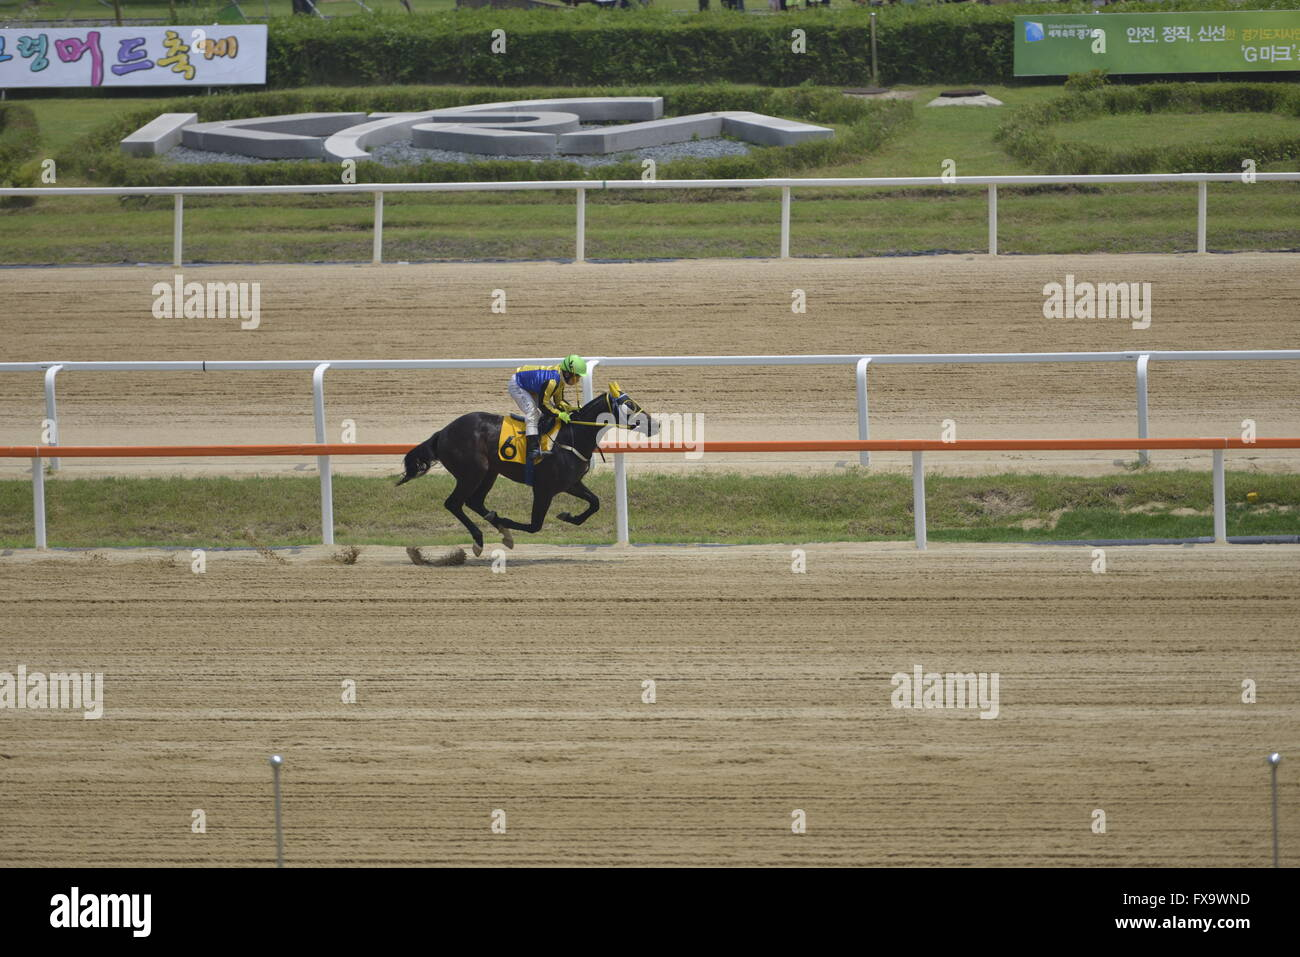 horse racing at a Races in South Korea - Stock Image